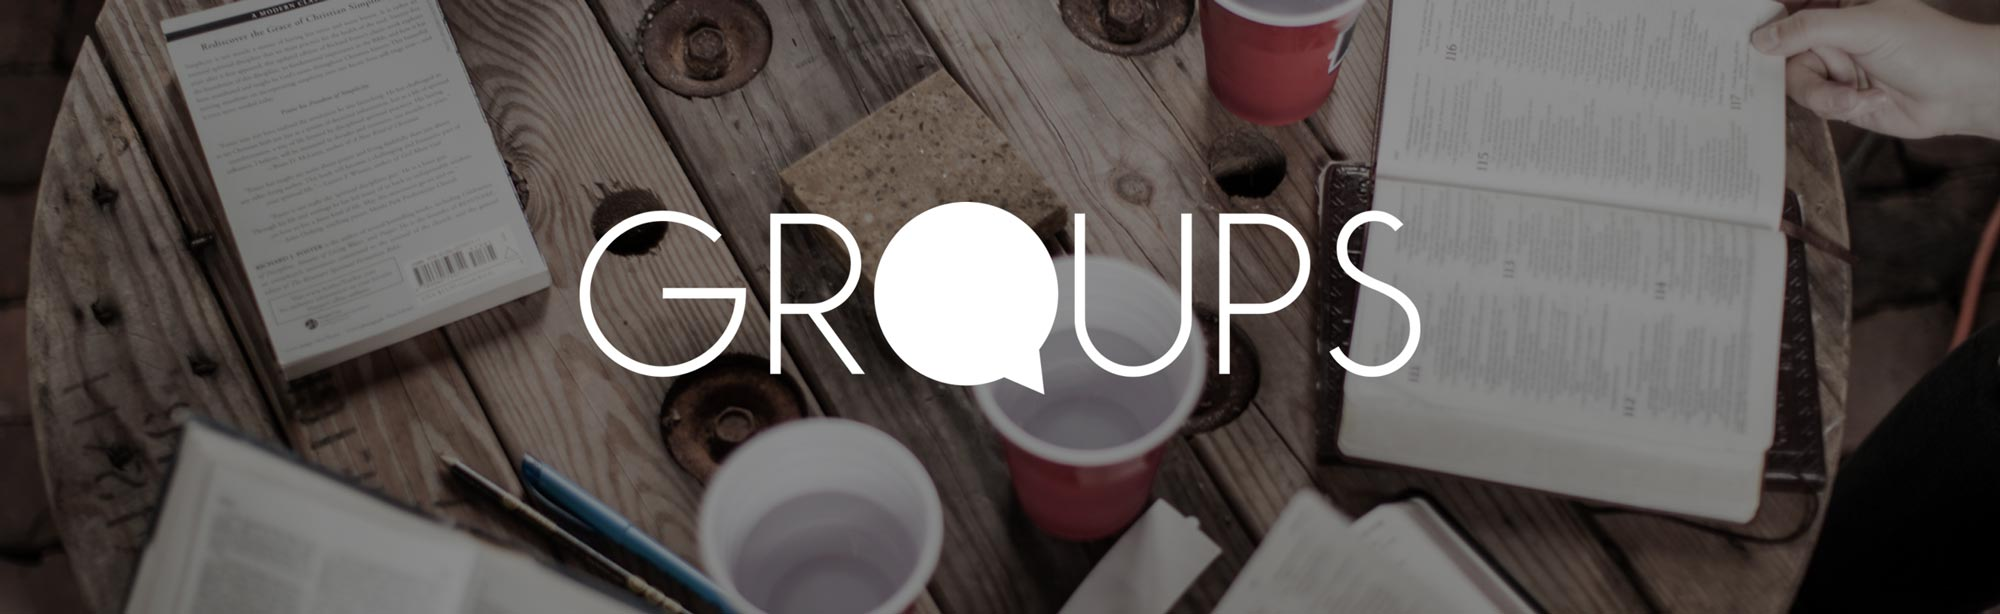 Groups - GroupLife - Grace Community Church